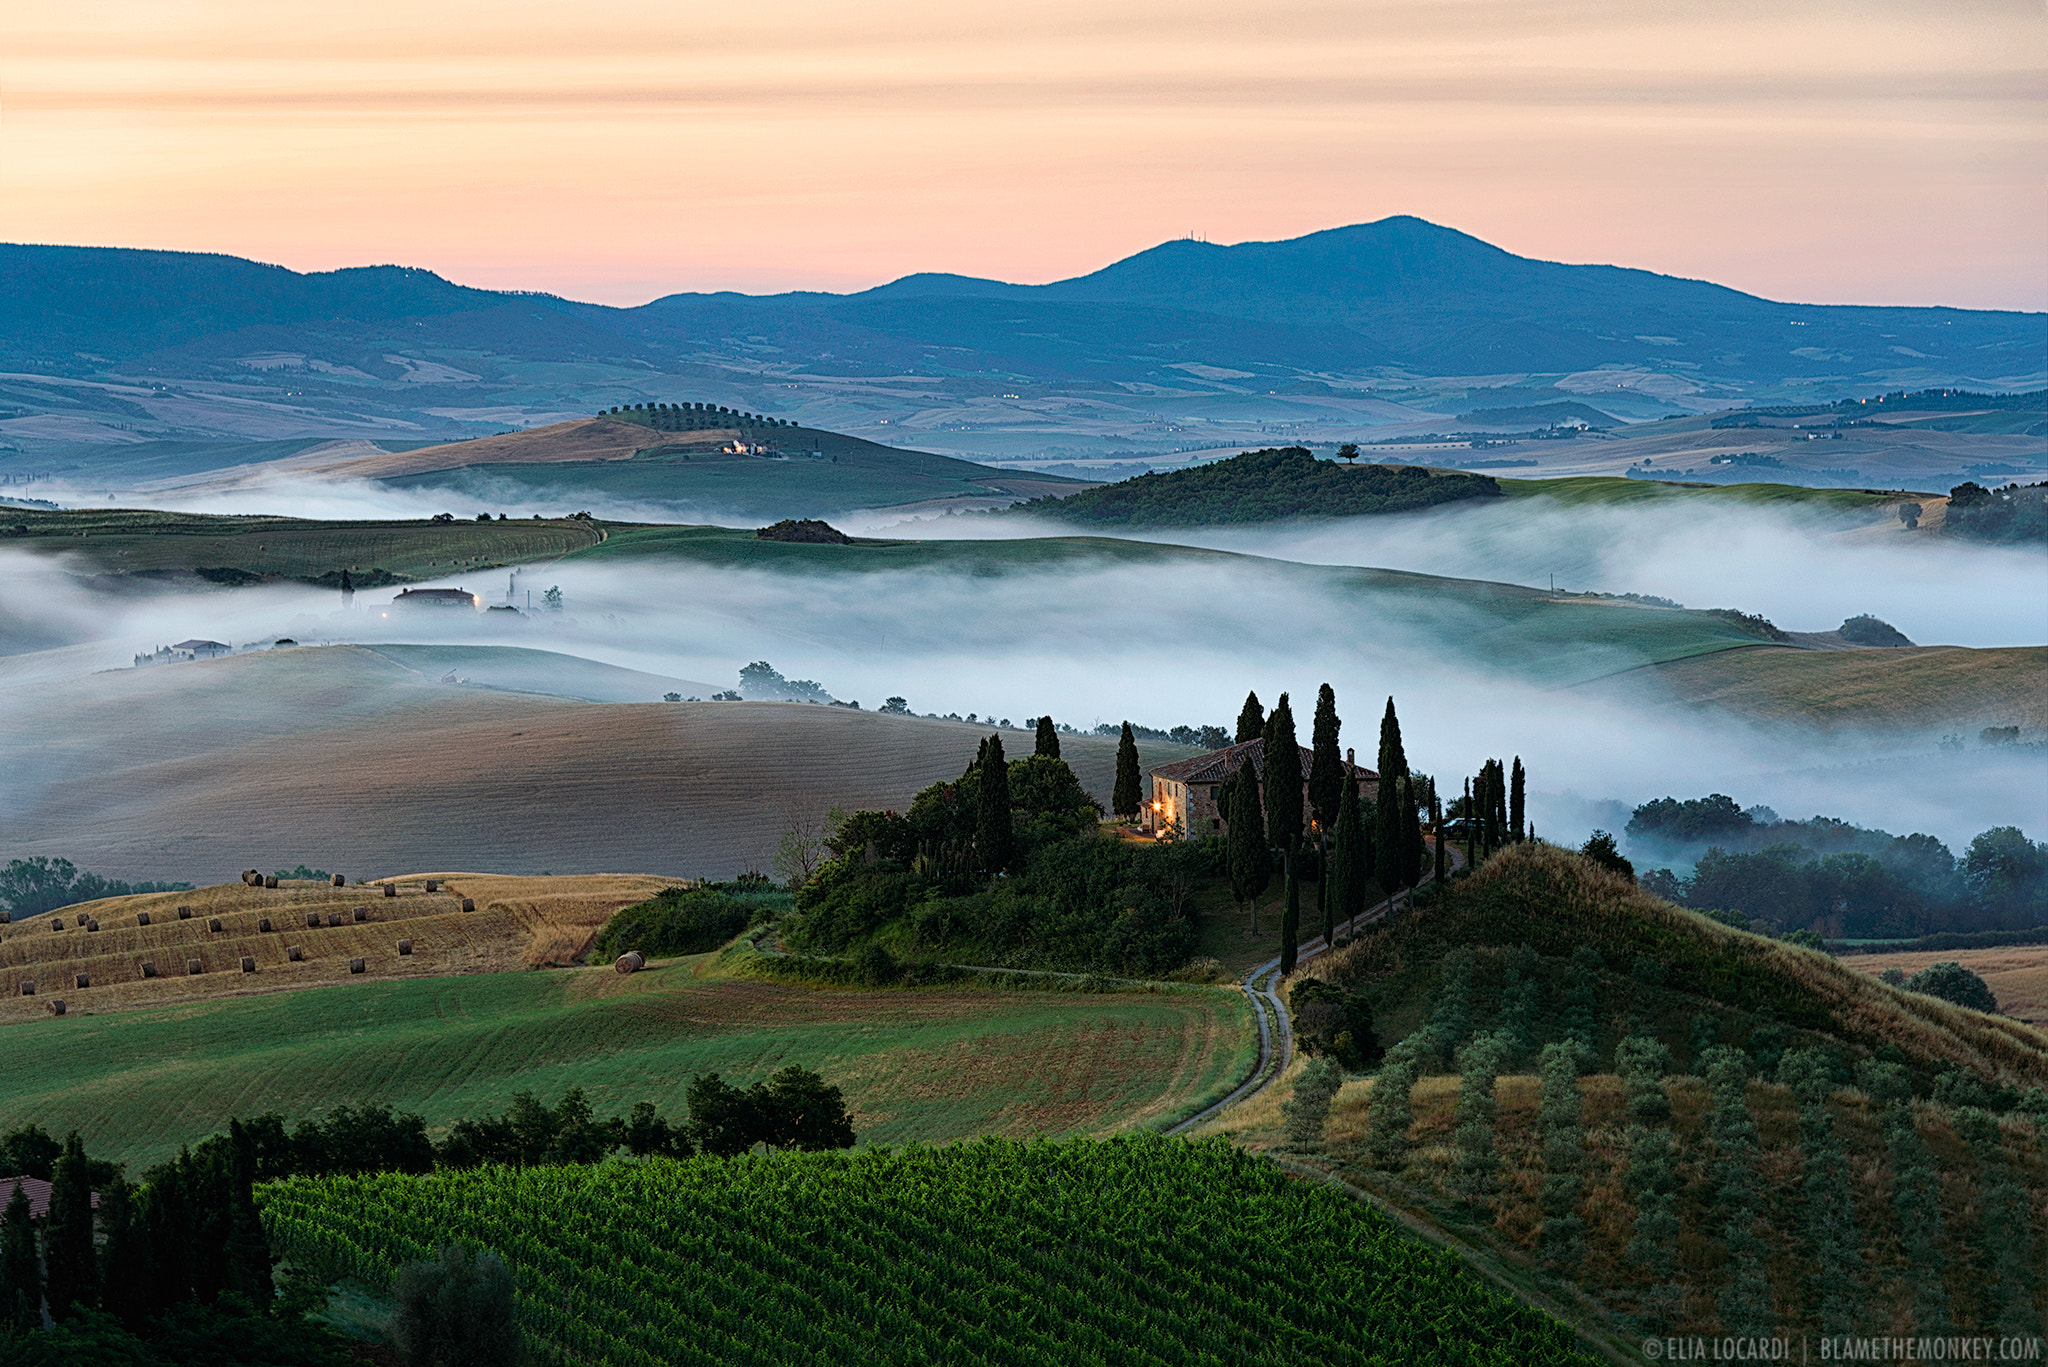 Photograph Tuscan Dreams - Italy by Elia Locardi on 500px